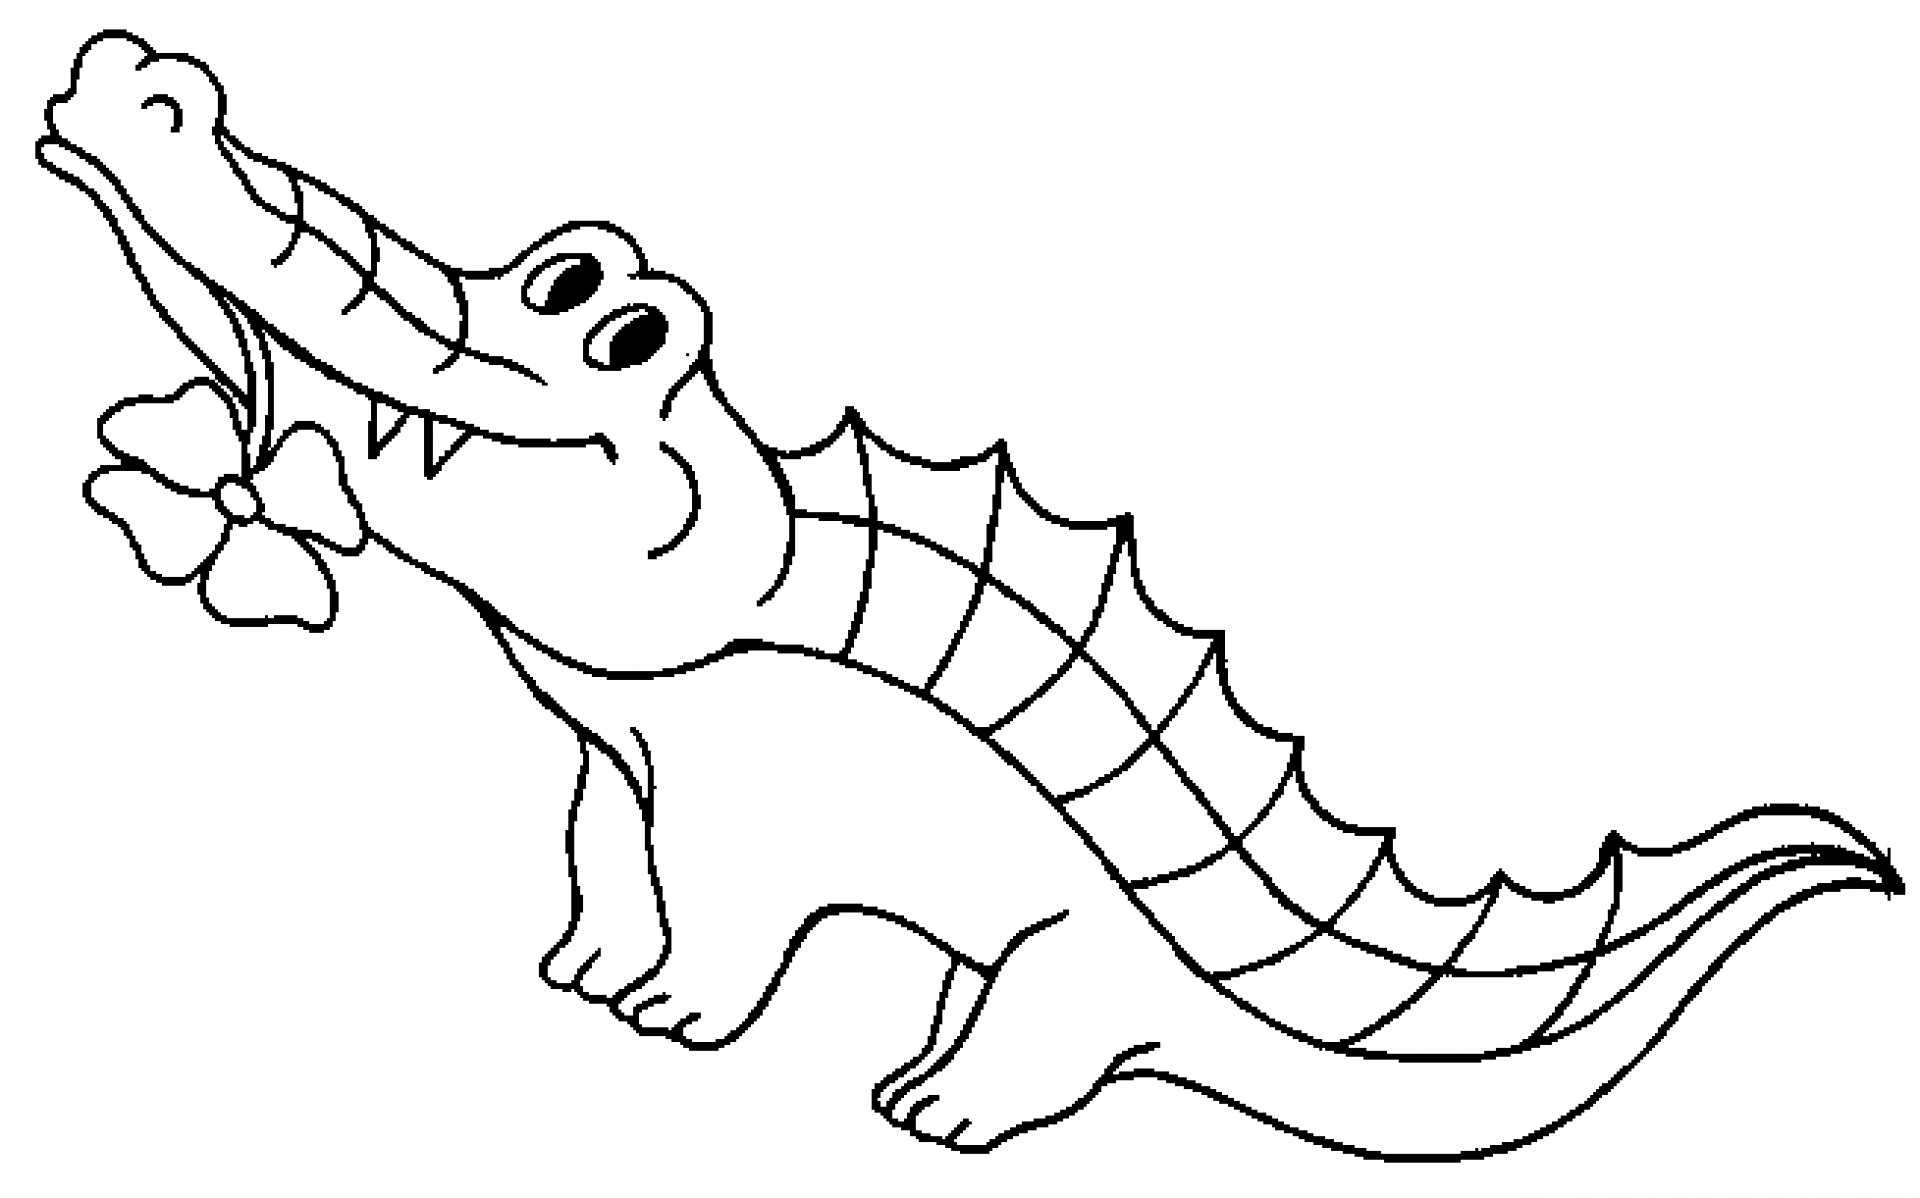 Clipart alligator black and white 4 » Clipart Station.